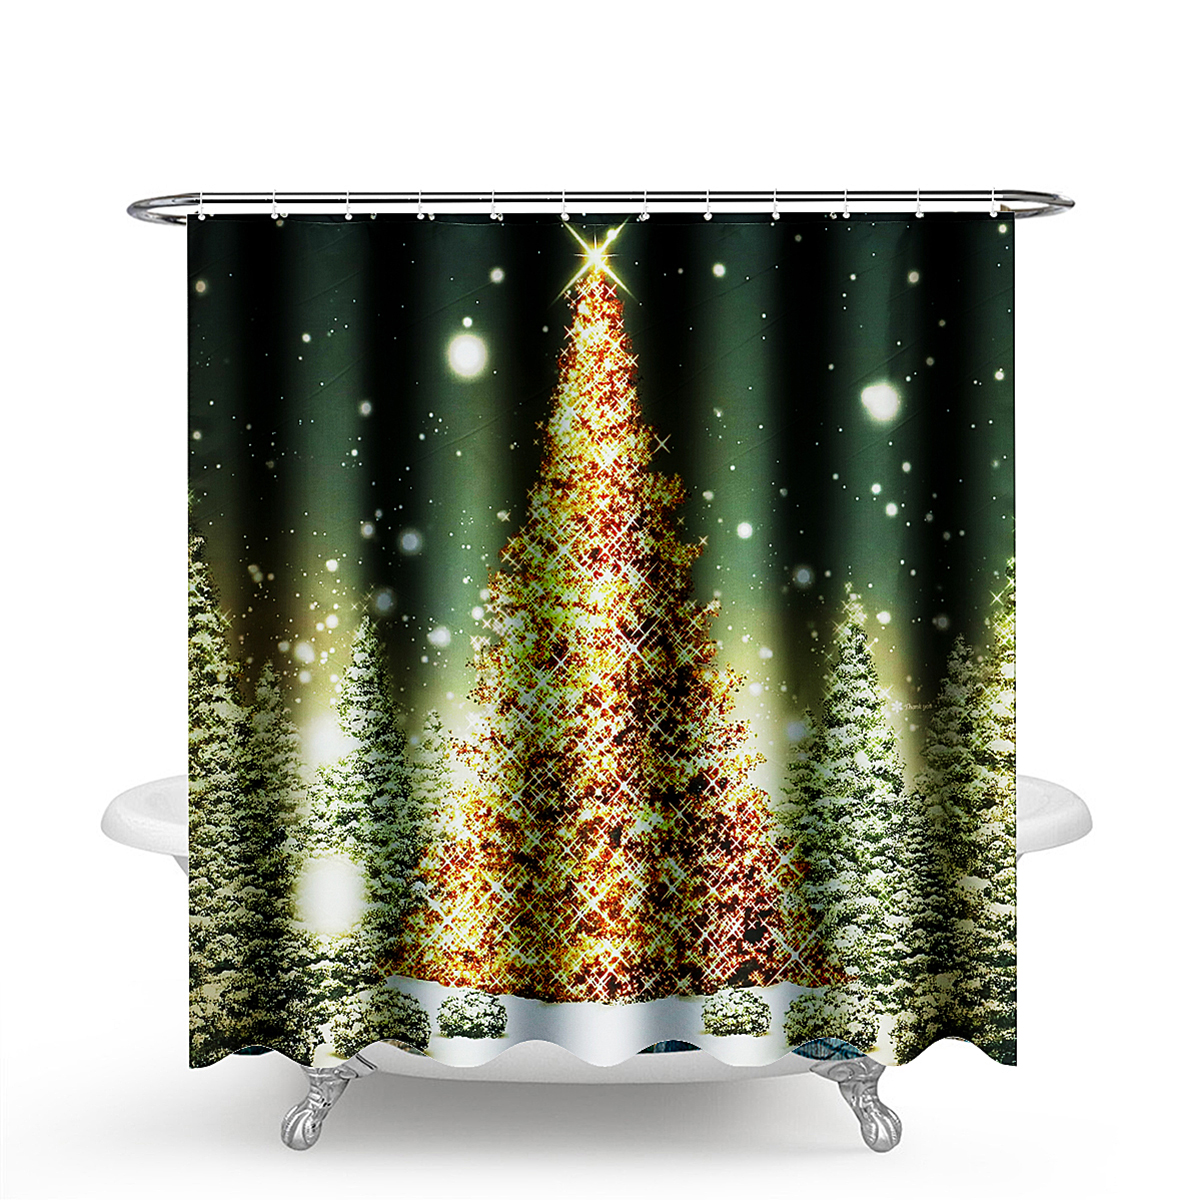 1 8m Christmas Waterproof Bathroom Shower Curtain Gold Xmas Tree Decor 12 Hook